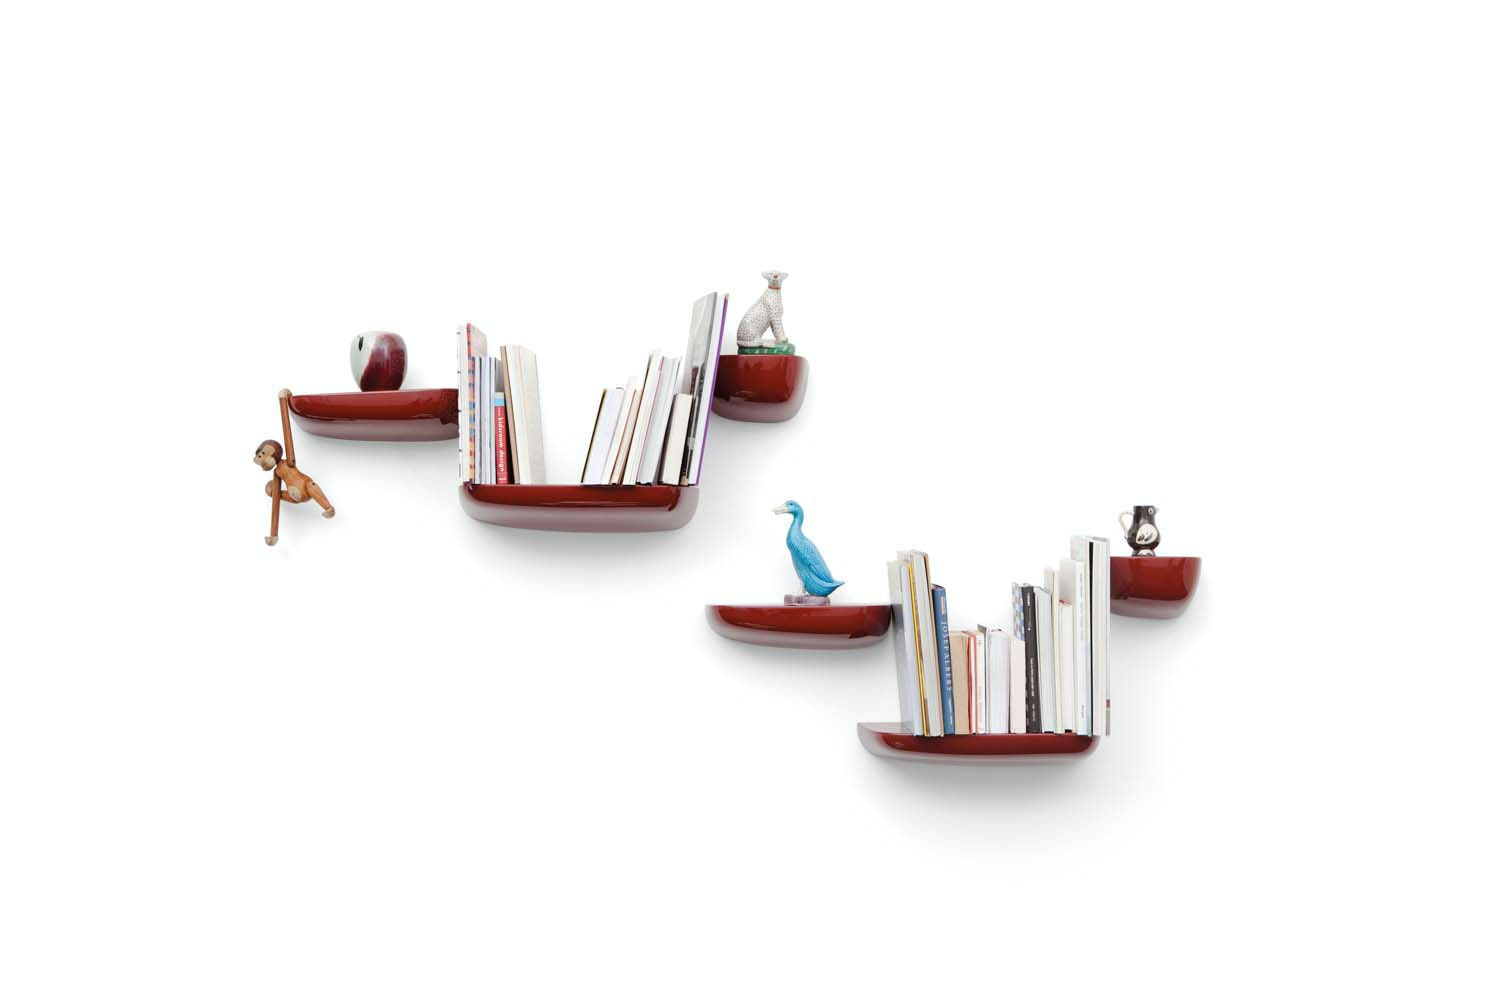 Corniches Medium Wall Mounted Storage by Ronan & Erwan Bouroullec for Vitra